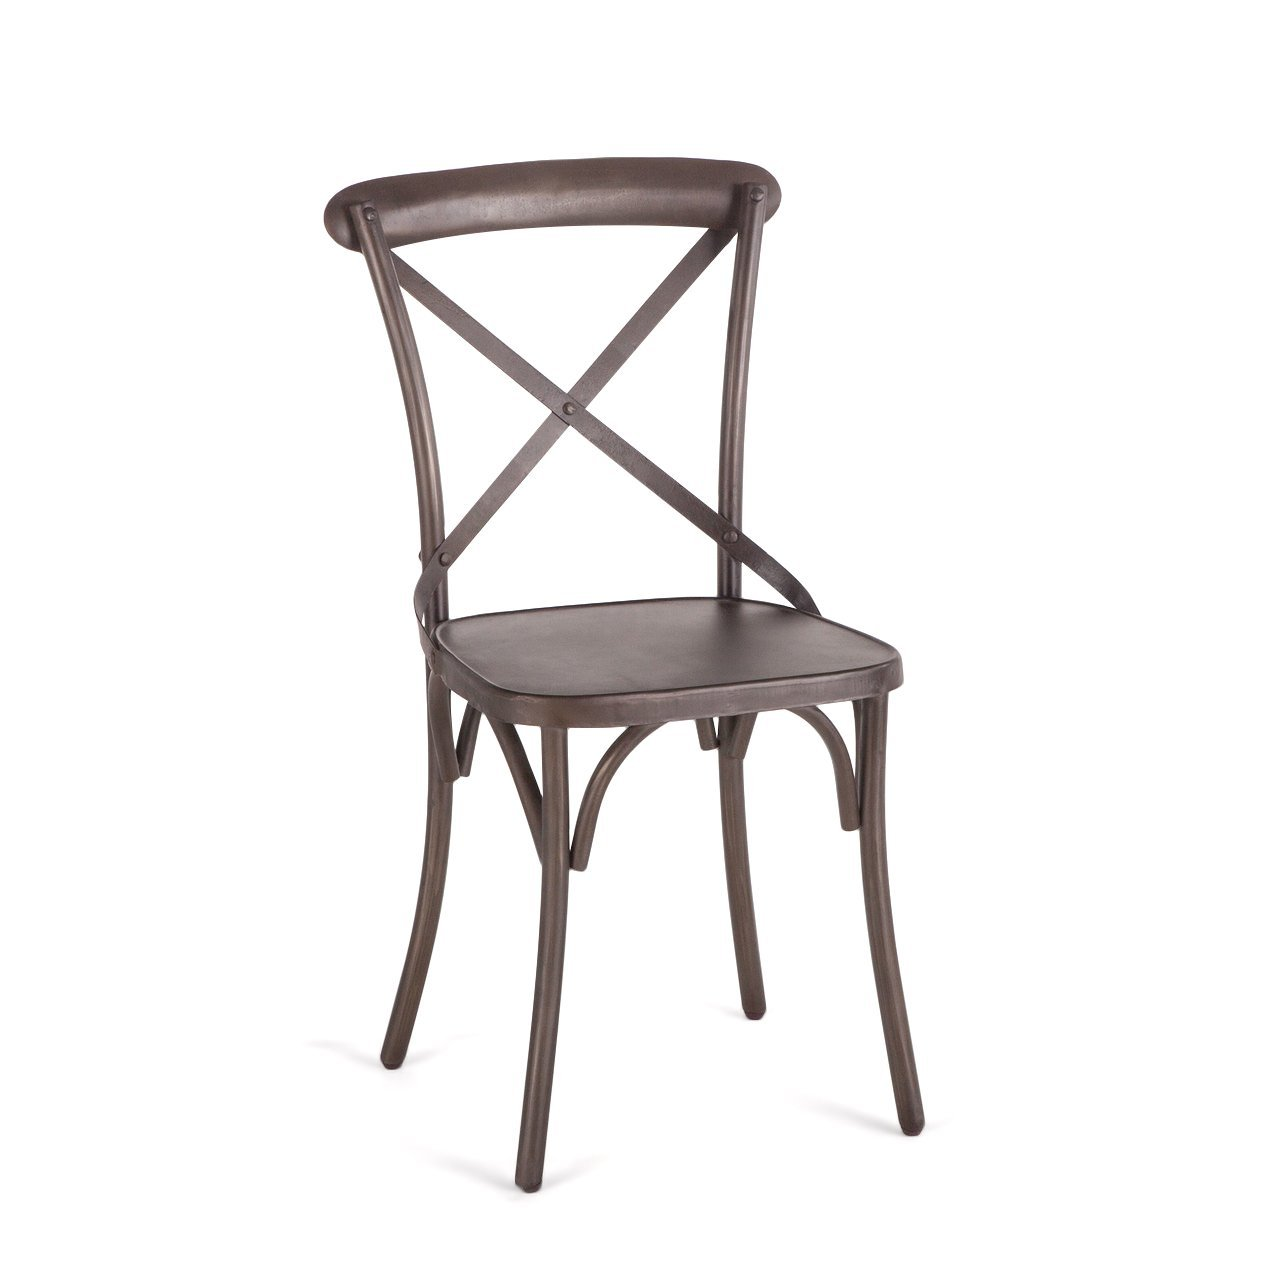 Pair Of 2 Farmhouse Metal Industrial Dining Chairs X Back Chair Rustic Deco  ...